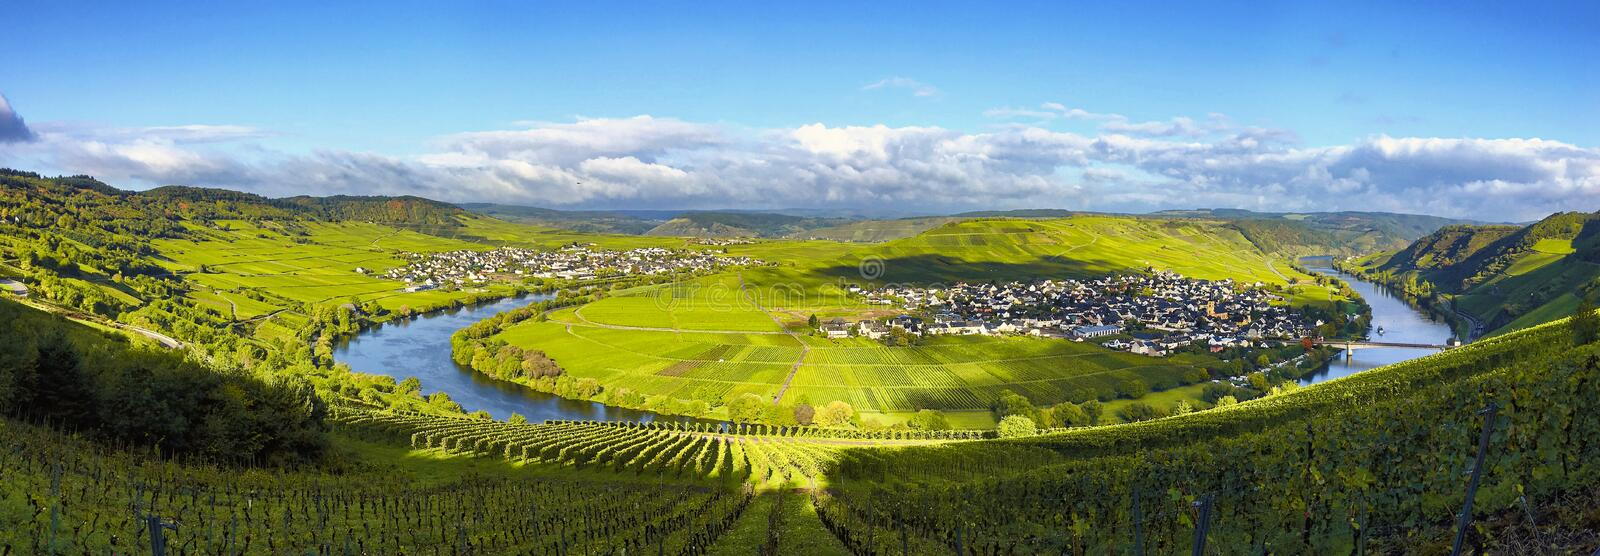 Panorama of the Moselle at Trittenheim stock photography